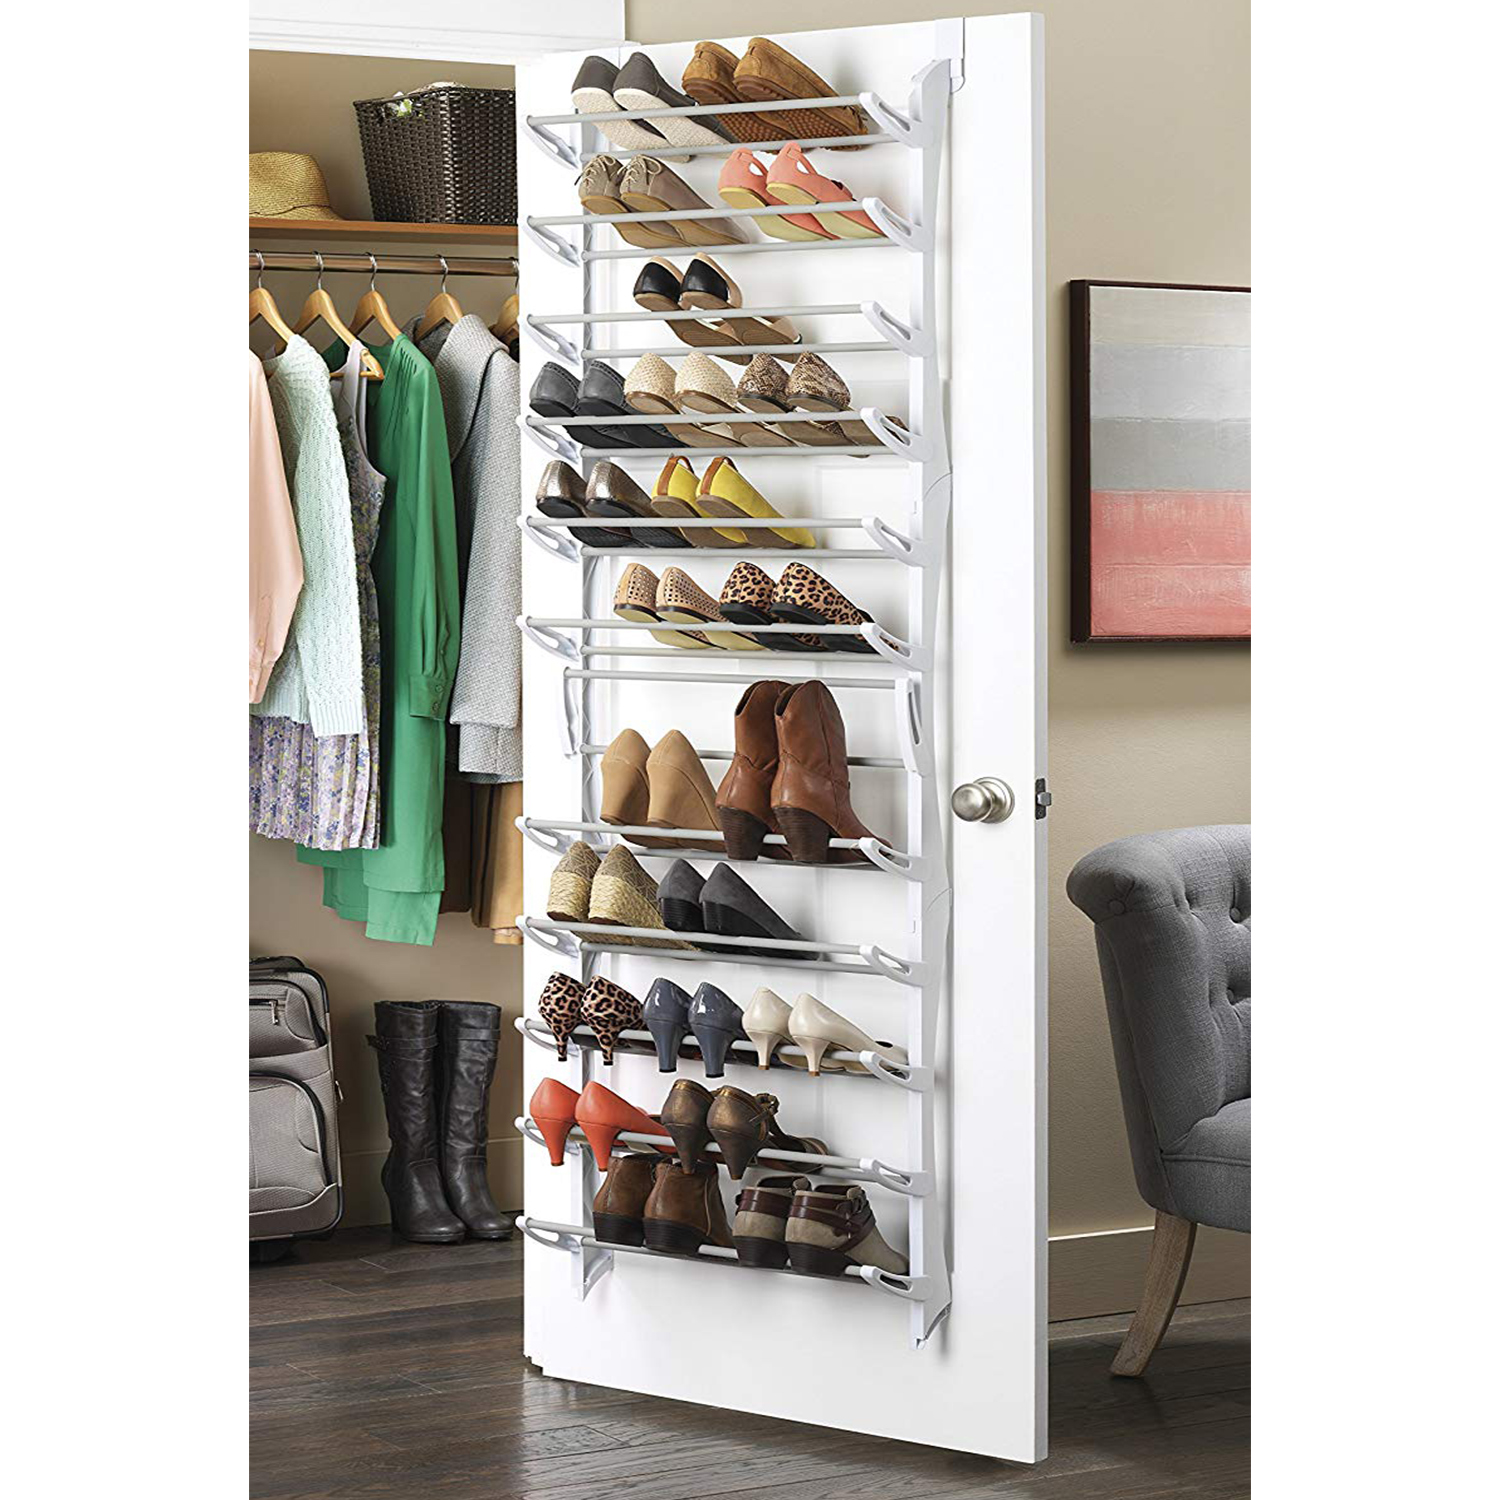 Details About 40 Pair Shoe Rack Organizer Wall Hanging Over The Door 12 Layers Closet Storage